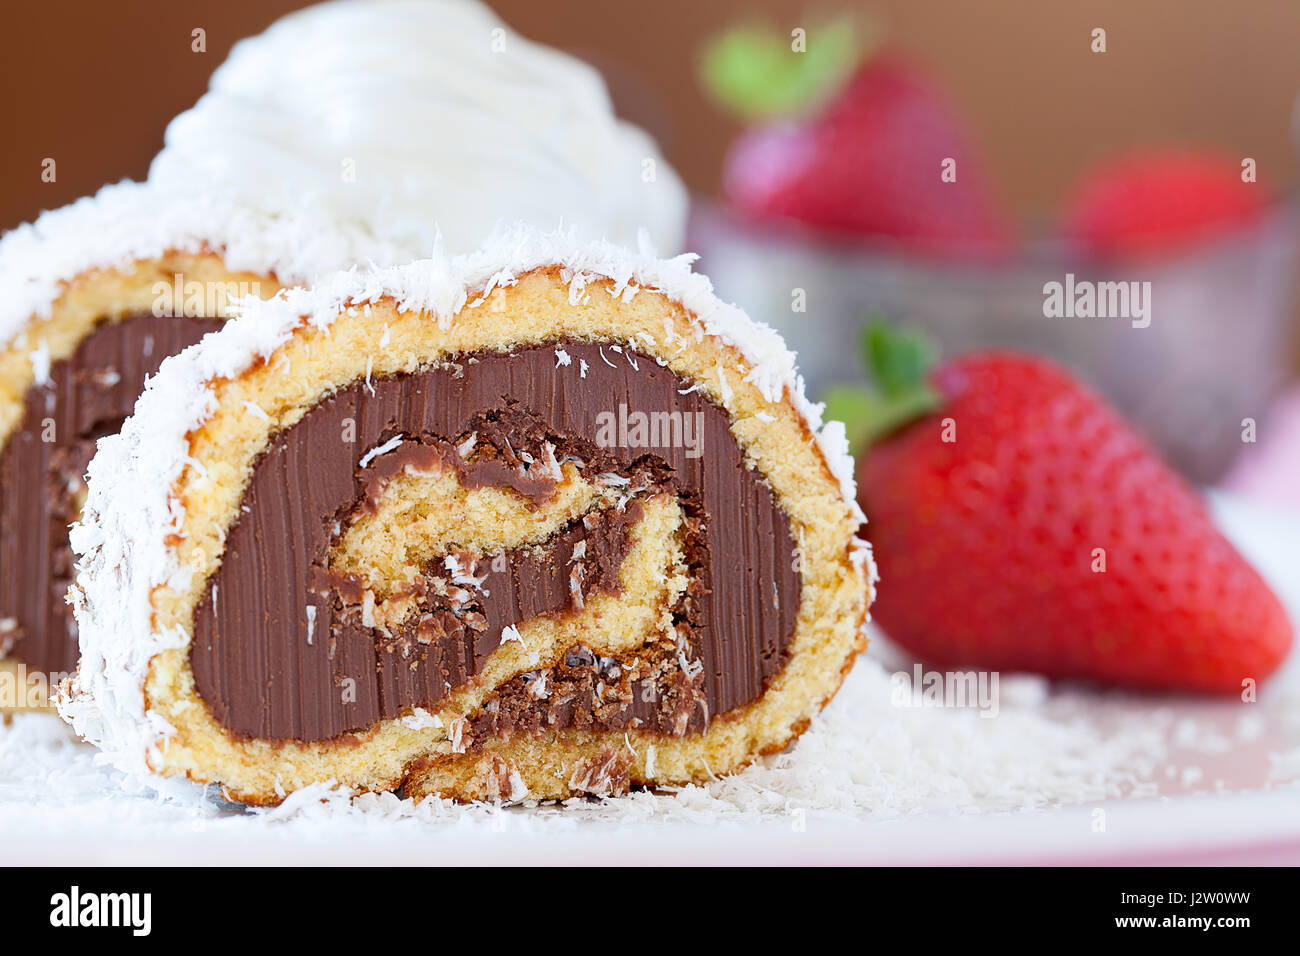 Slice of chocolate coconut cake roll decorated with ehipped cream and strawberries, closeup view. Stock Photo